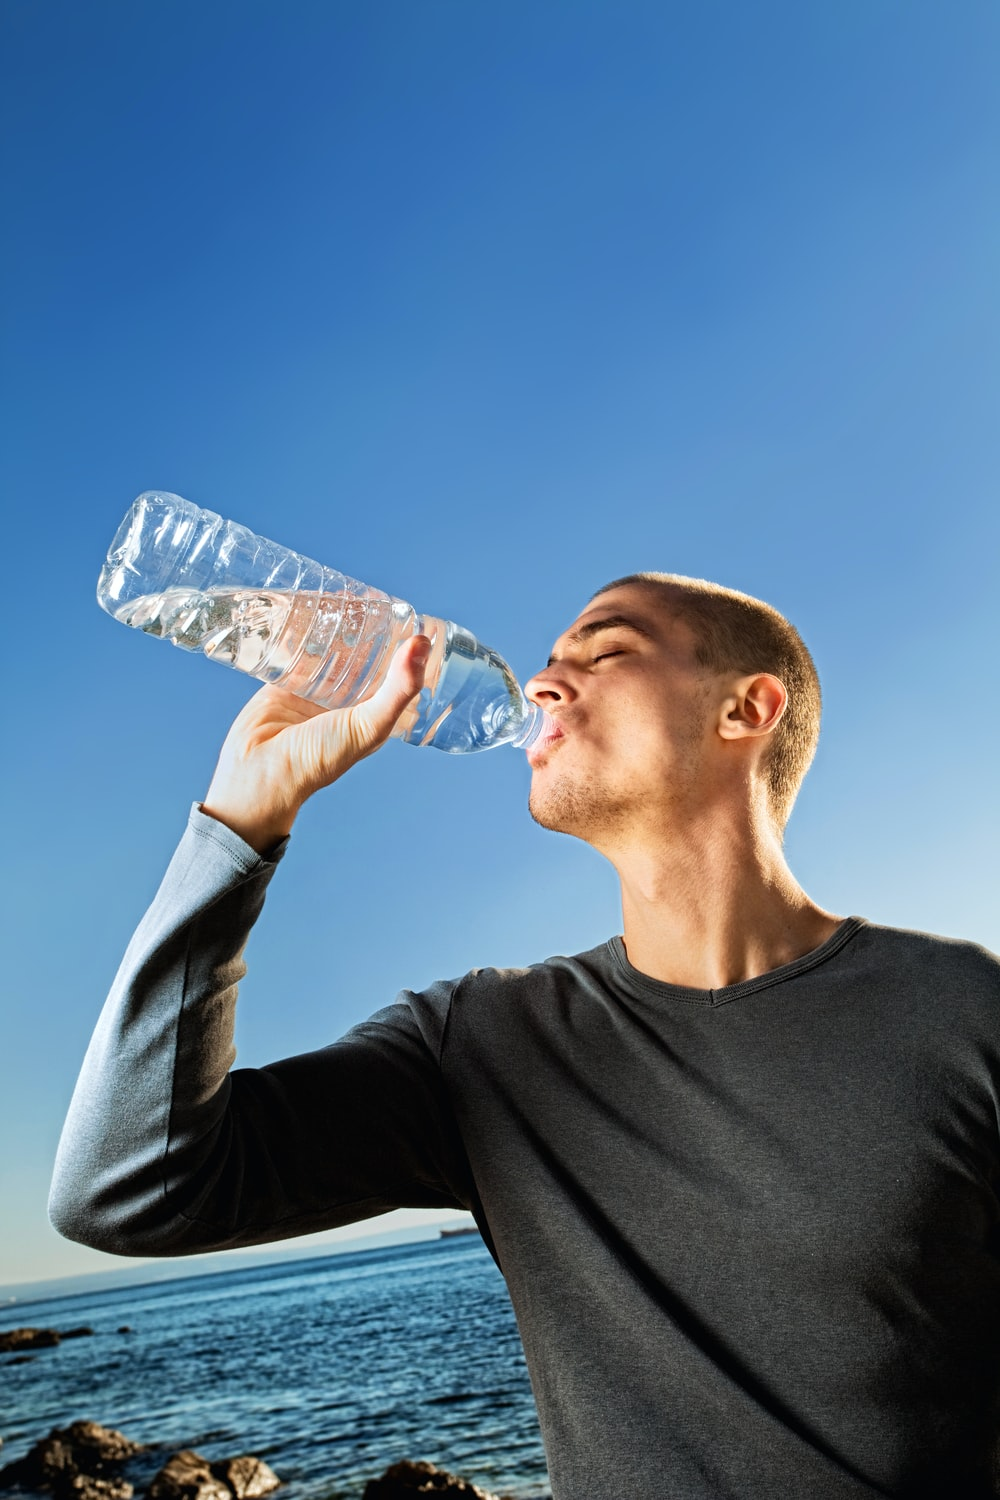 man in black crew neck shirt drinking water